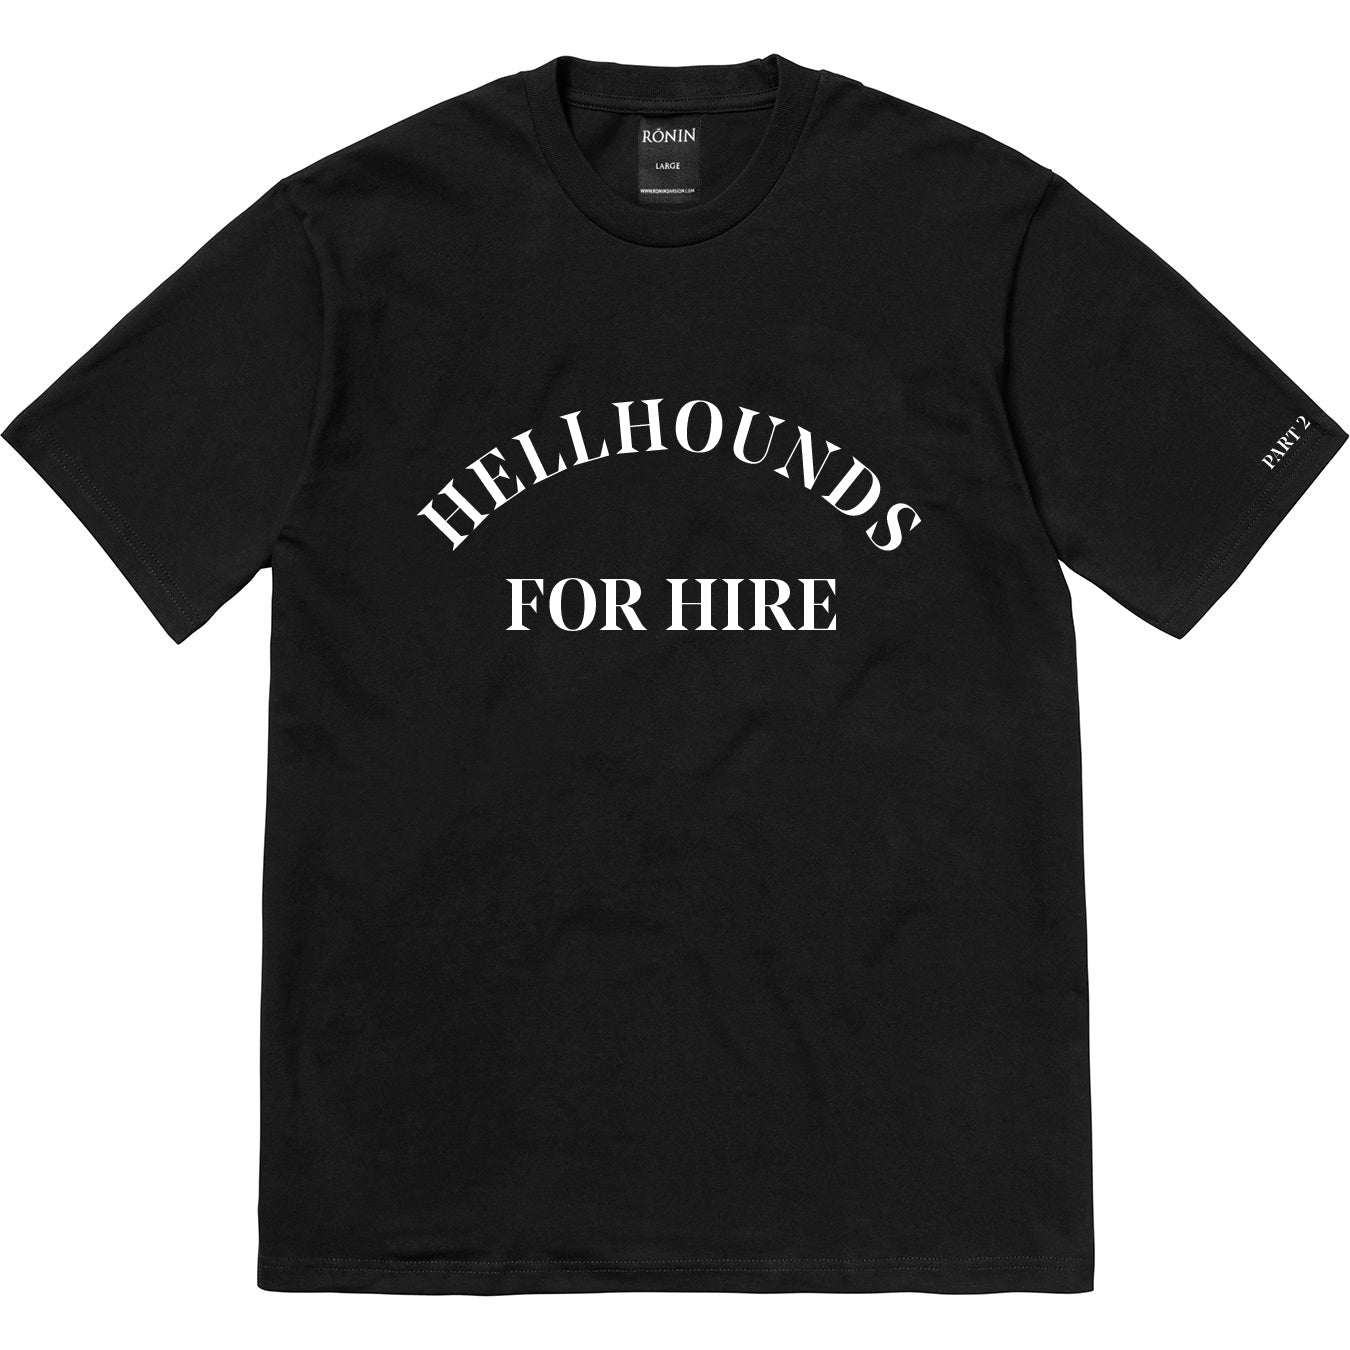 Hellhounds Part 2 Tee - Black